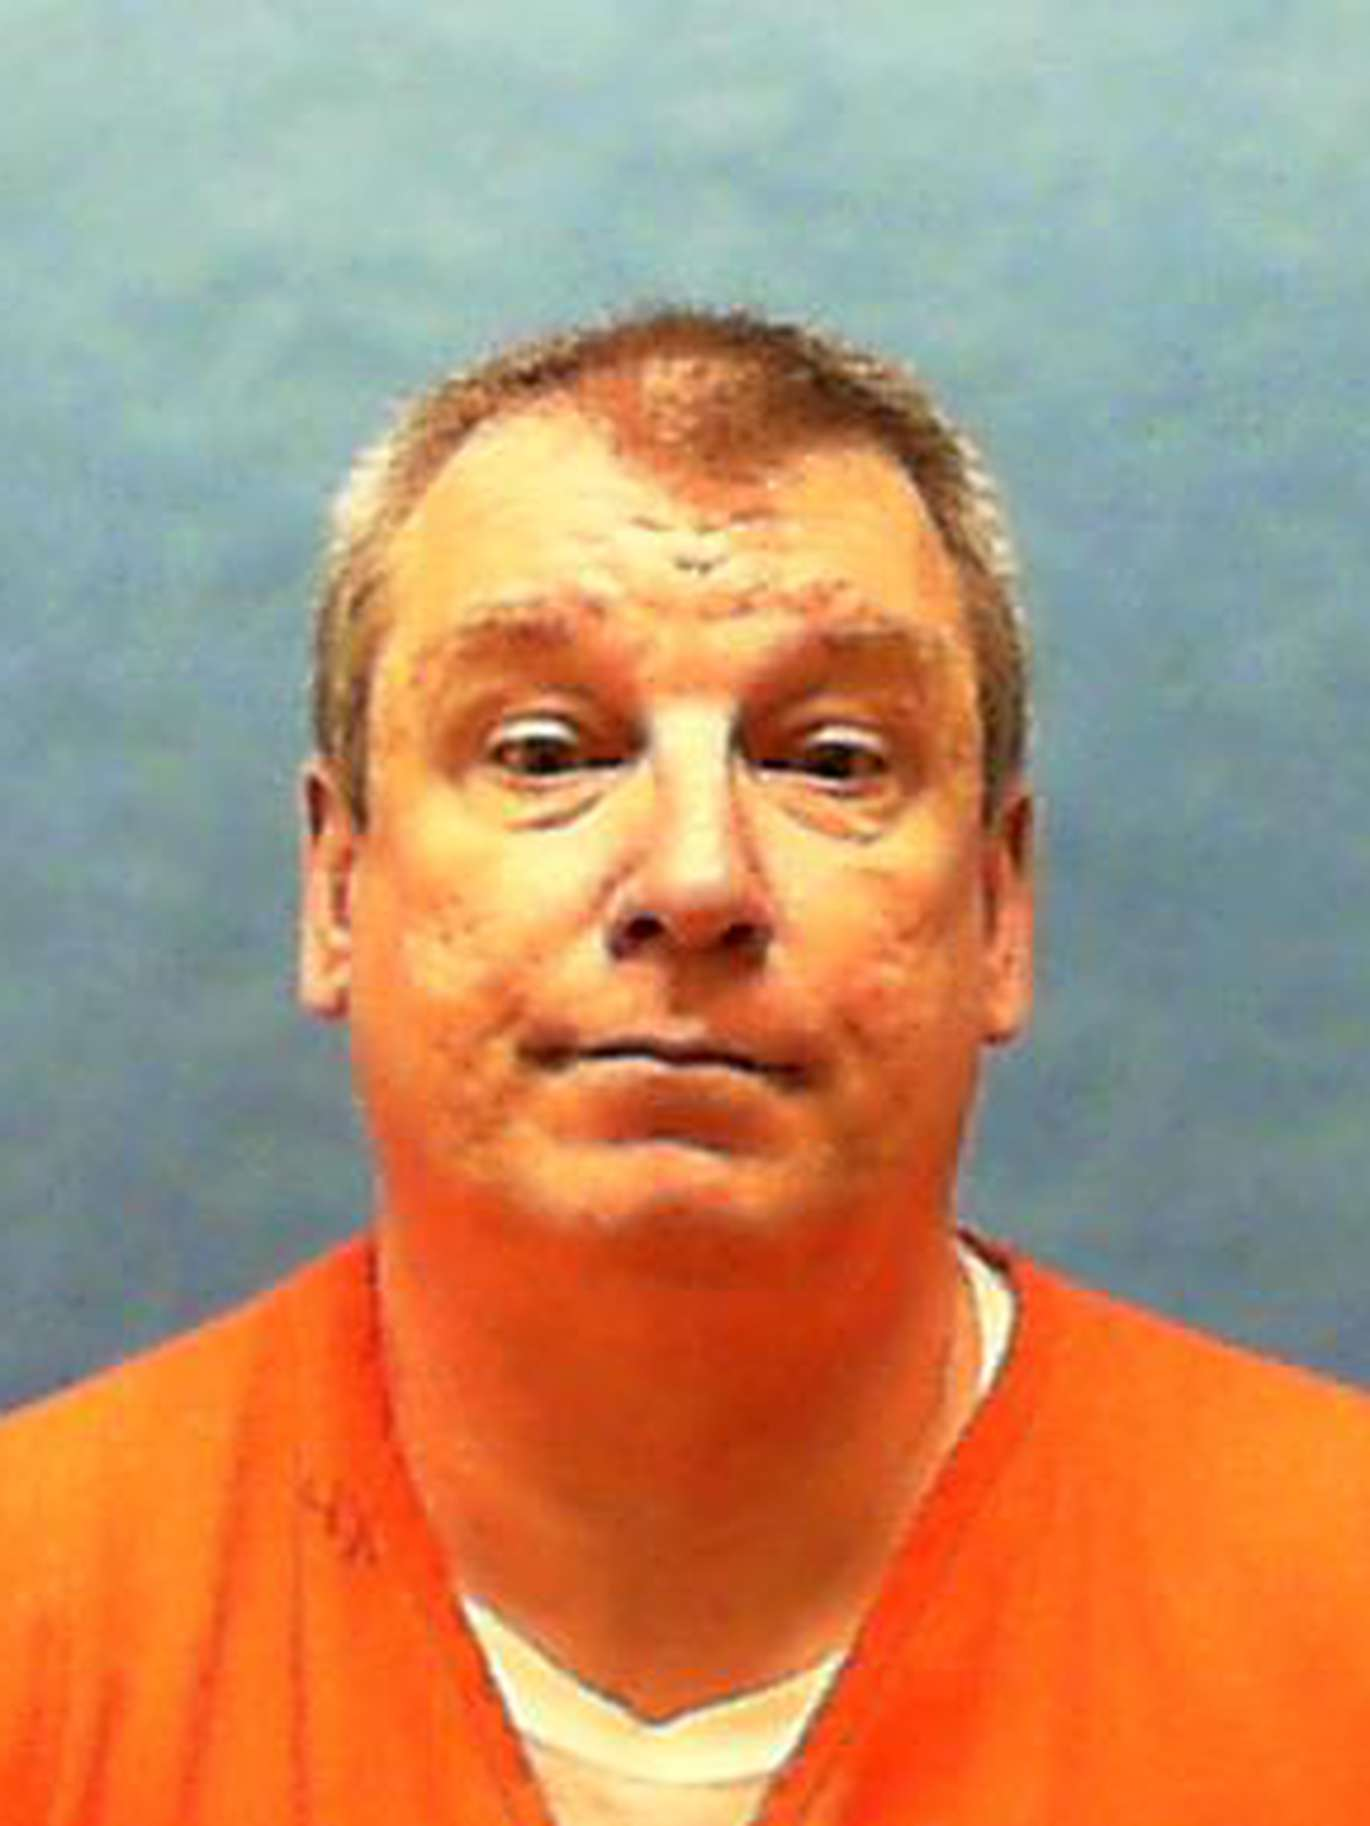 Charles Brant was convicted of first-degree murder in November 2007 for killing 21-year-old Sara Radfar. She was Brant's neighbor at the time of the murder in 2004. He began his sentence on Dec. 6, 2007.